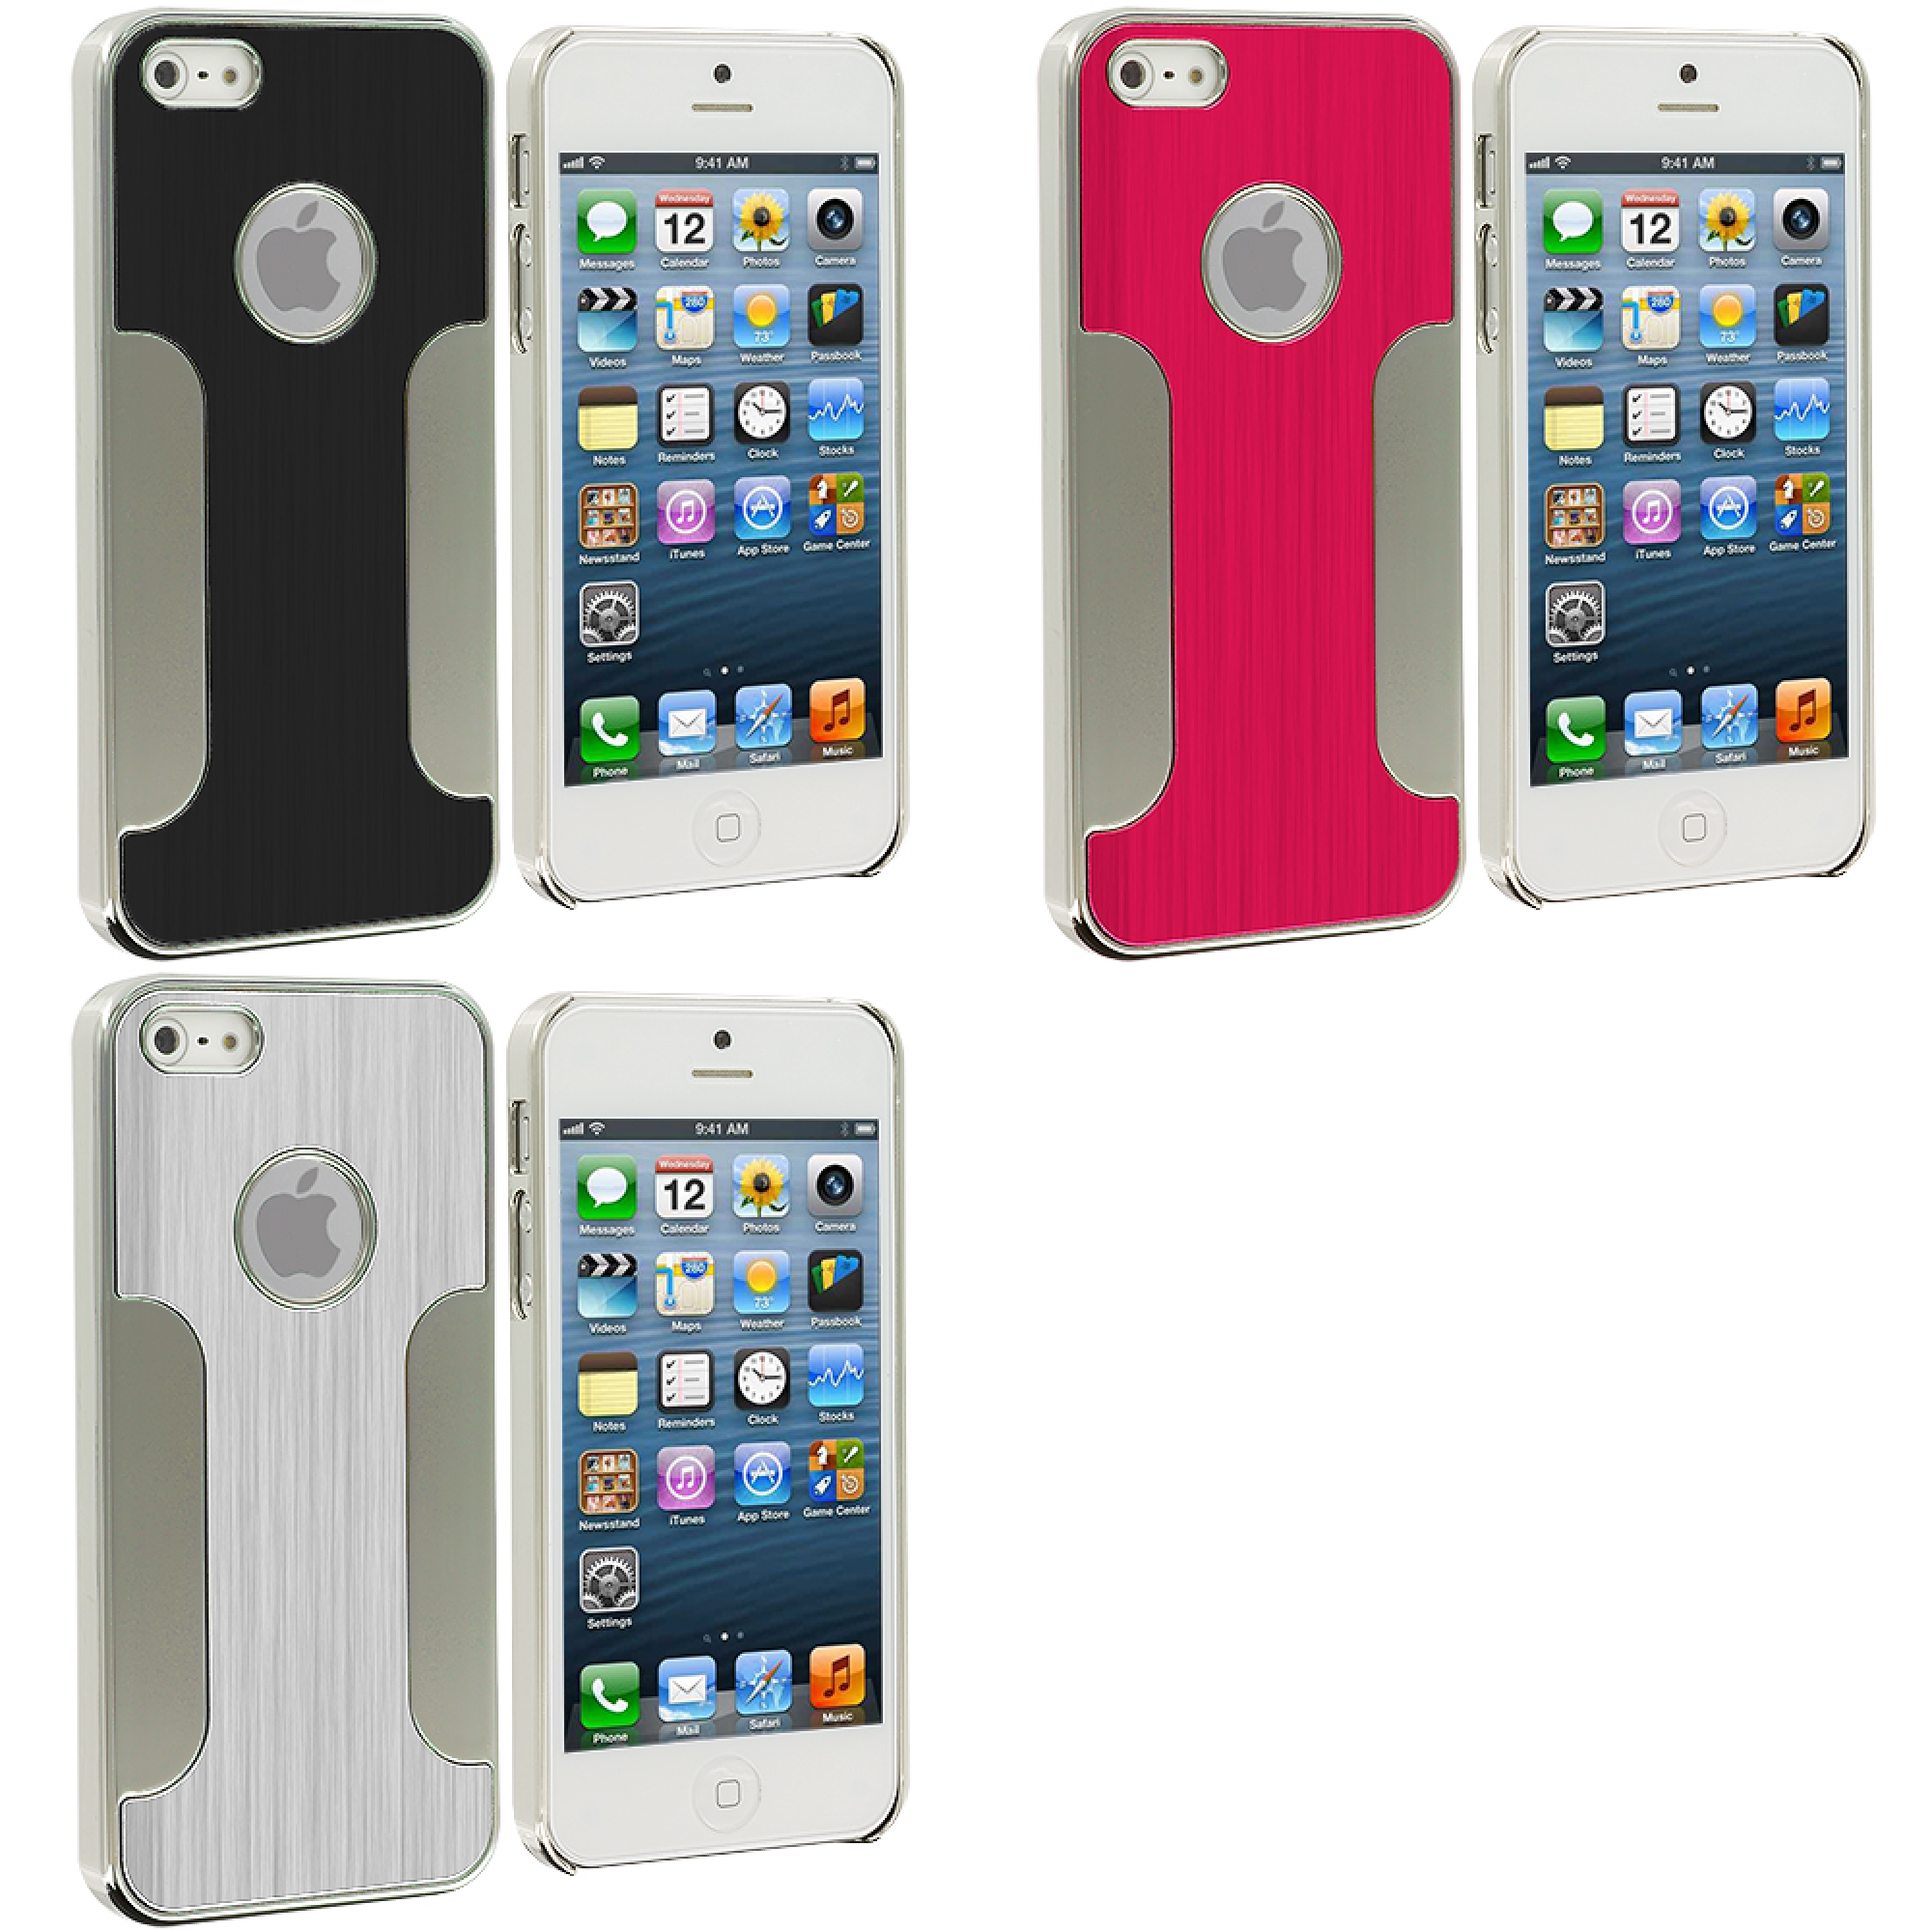 Apple iPhone 5/5S/SE Combo Pack : Black Brushed Metal Aluminum Metal Hard Case Cover